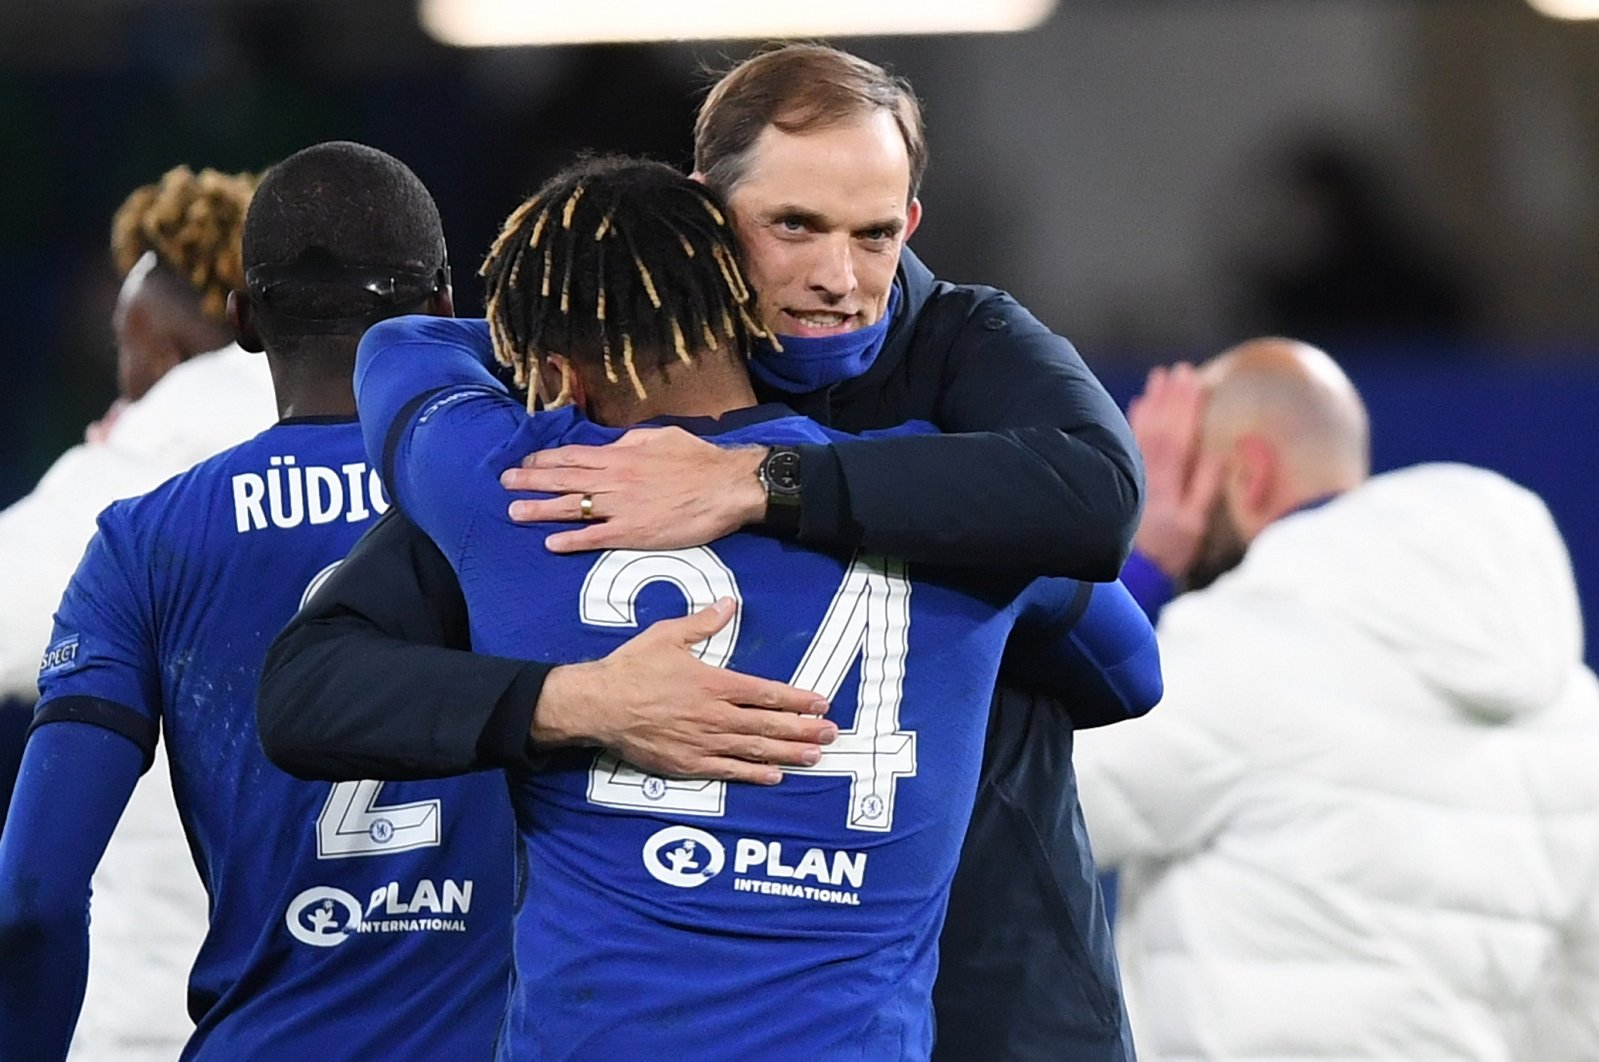 Chelsea manager Thomas Tuchel celebrates with player Reece James after winning the UEFA Champions League semi final, second leg soccer match between Chelsea FC and Real Madrid in London, Britain, 05 May 2021. (EPA Photo)